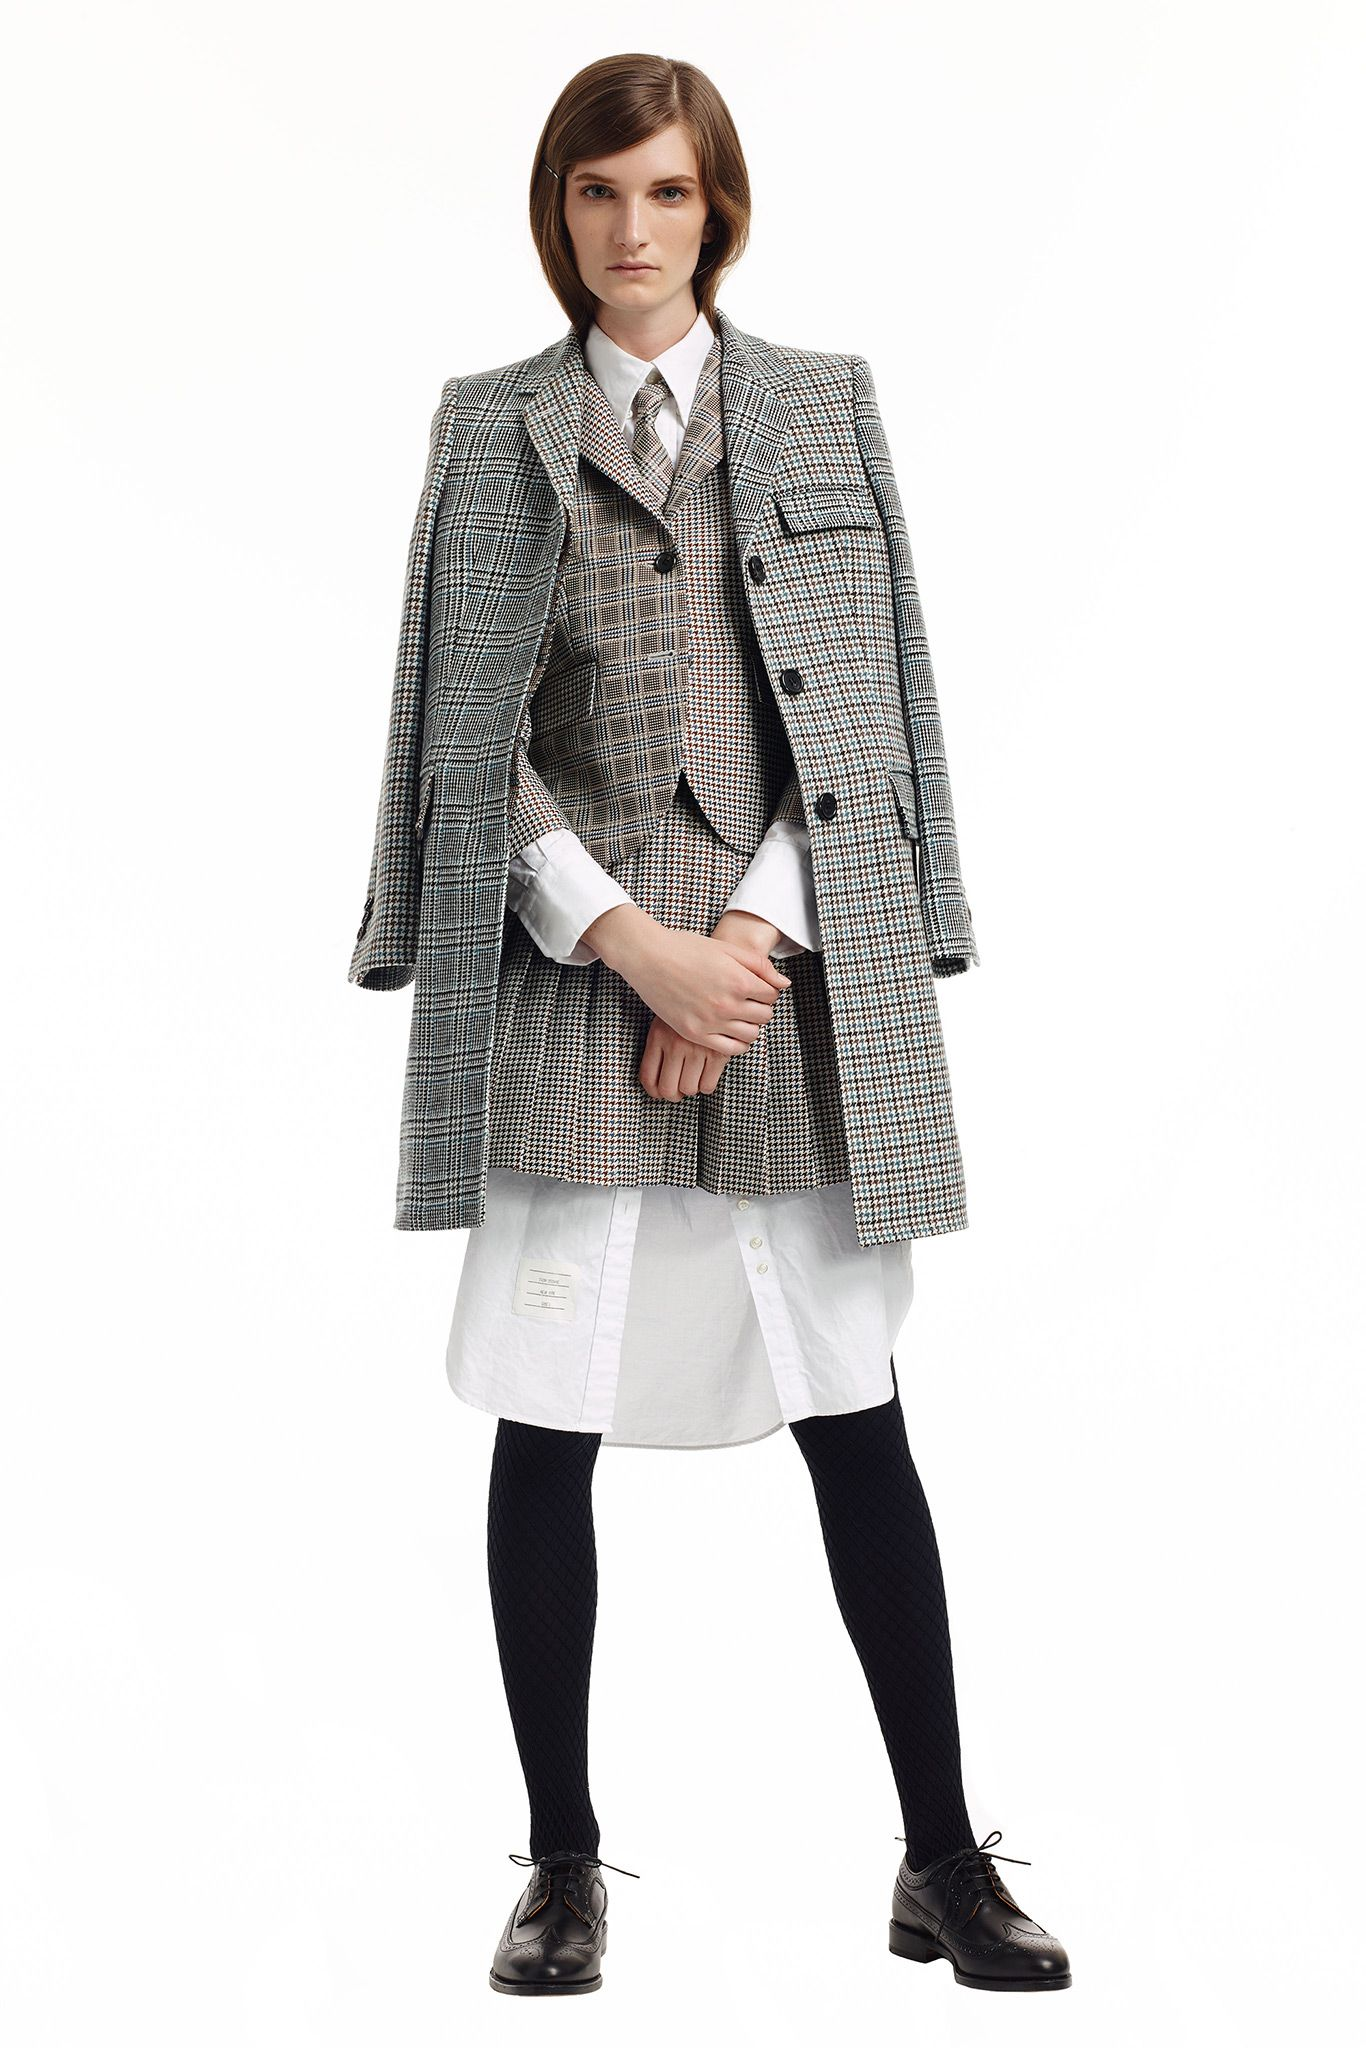 Outfits Inspired in thom browne pre-fall